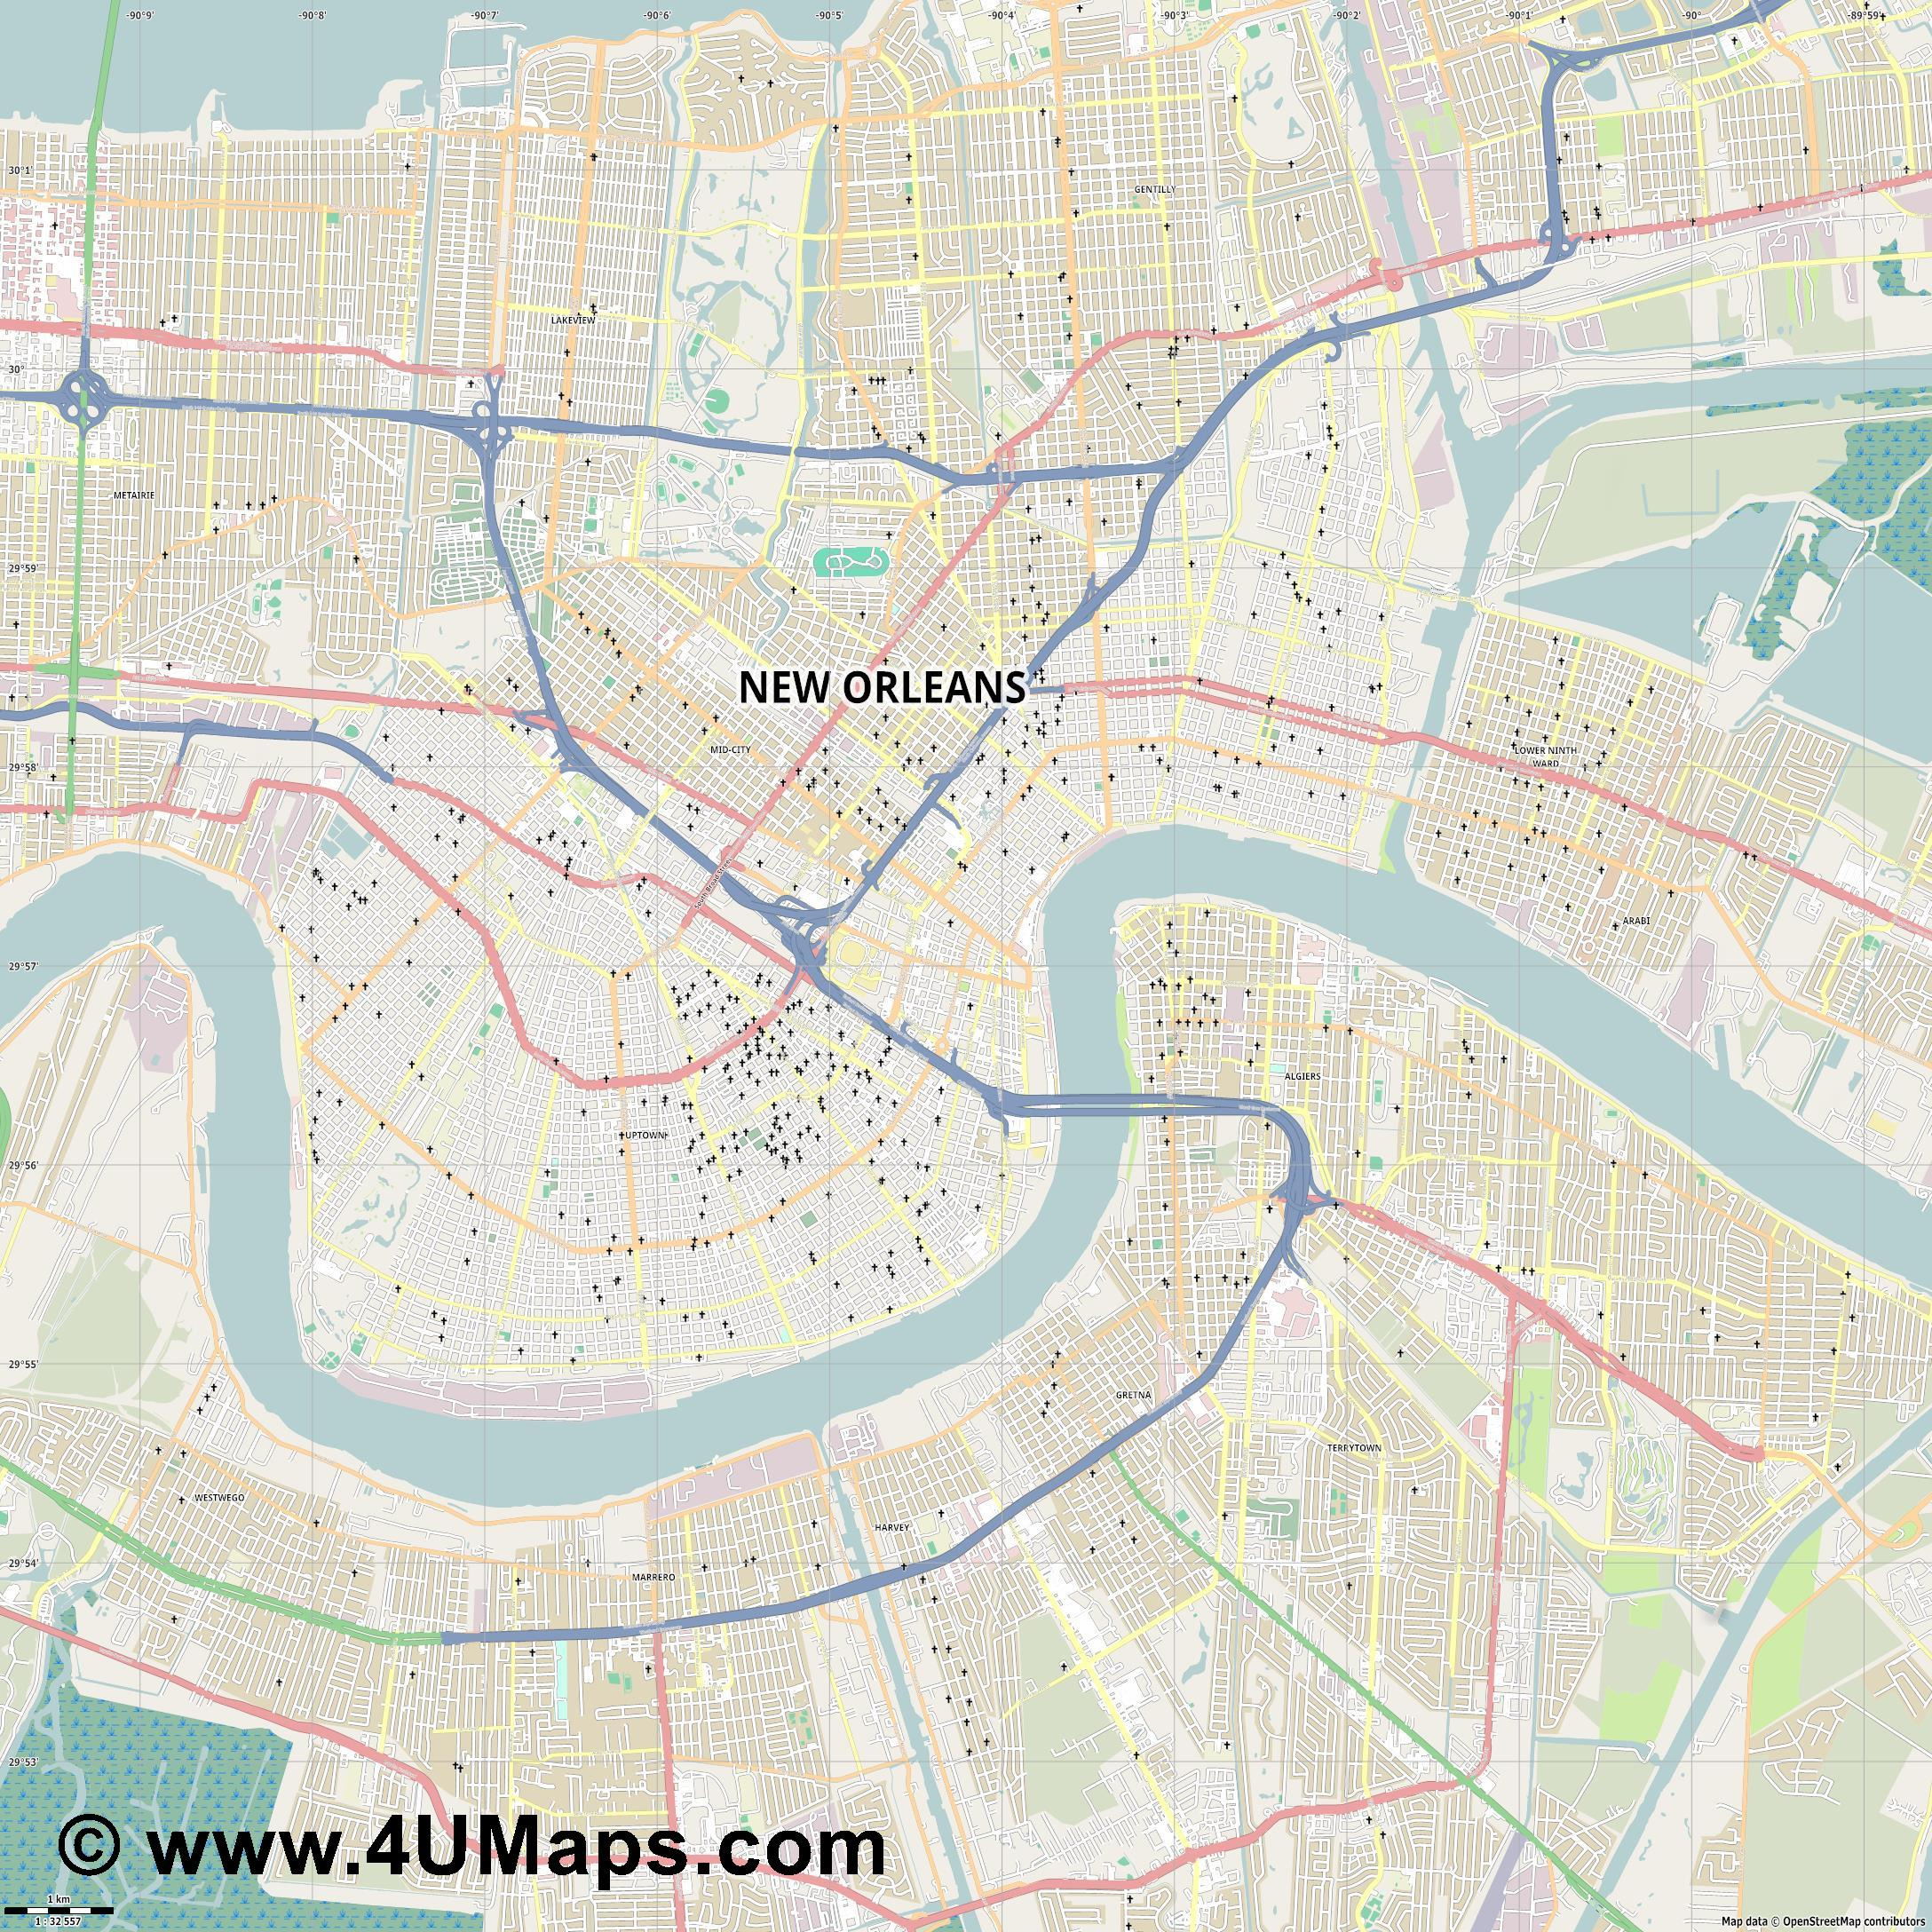 Svg Scalable Vector City Map New Orleans - Map of new orleans area